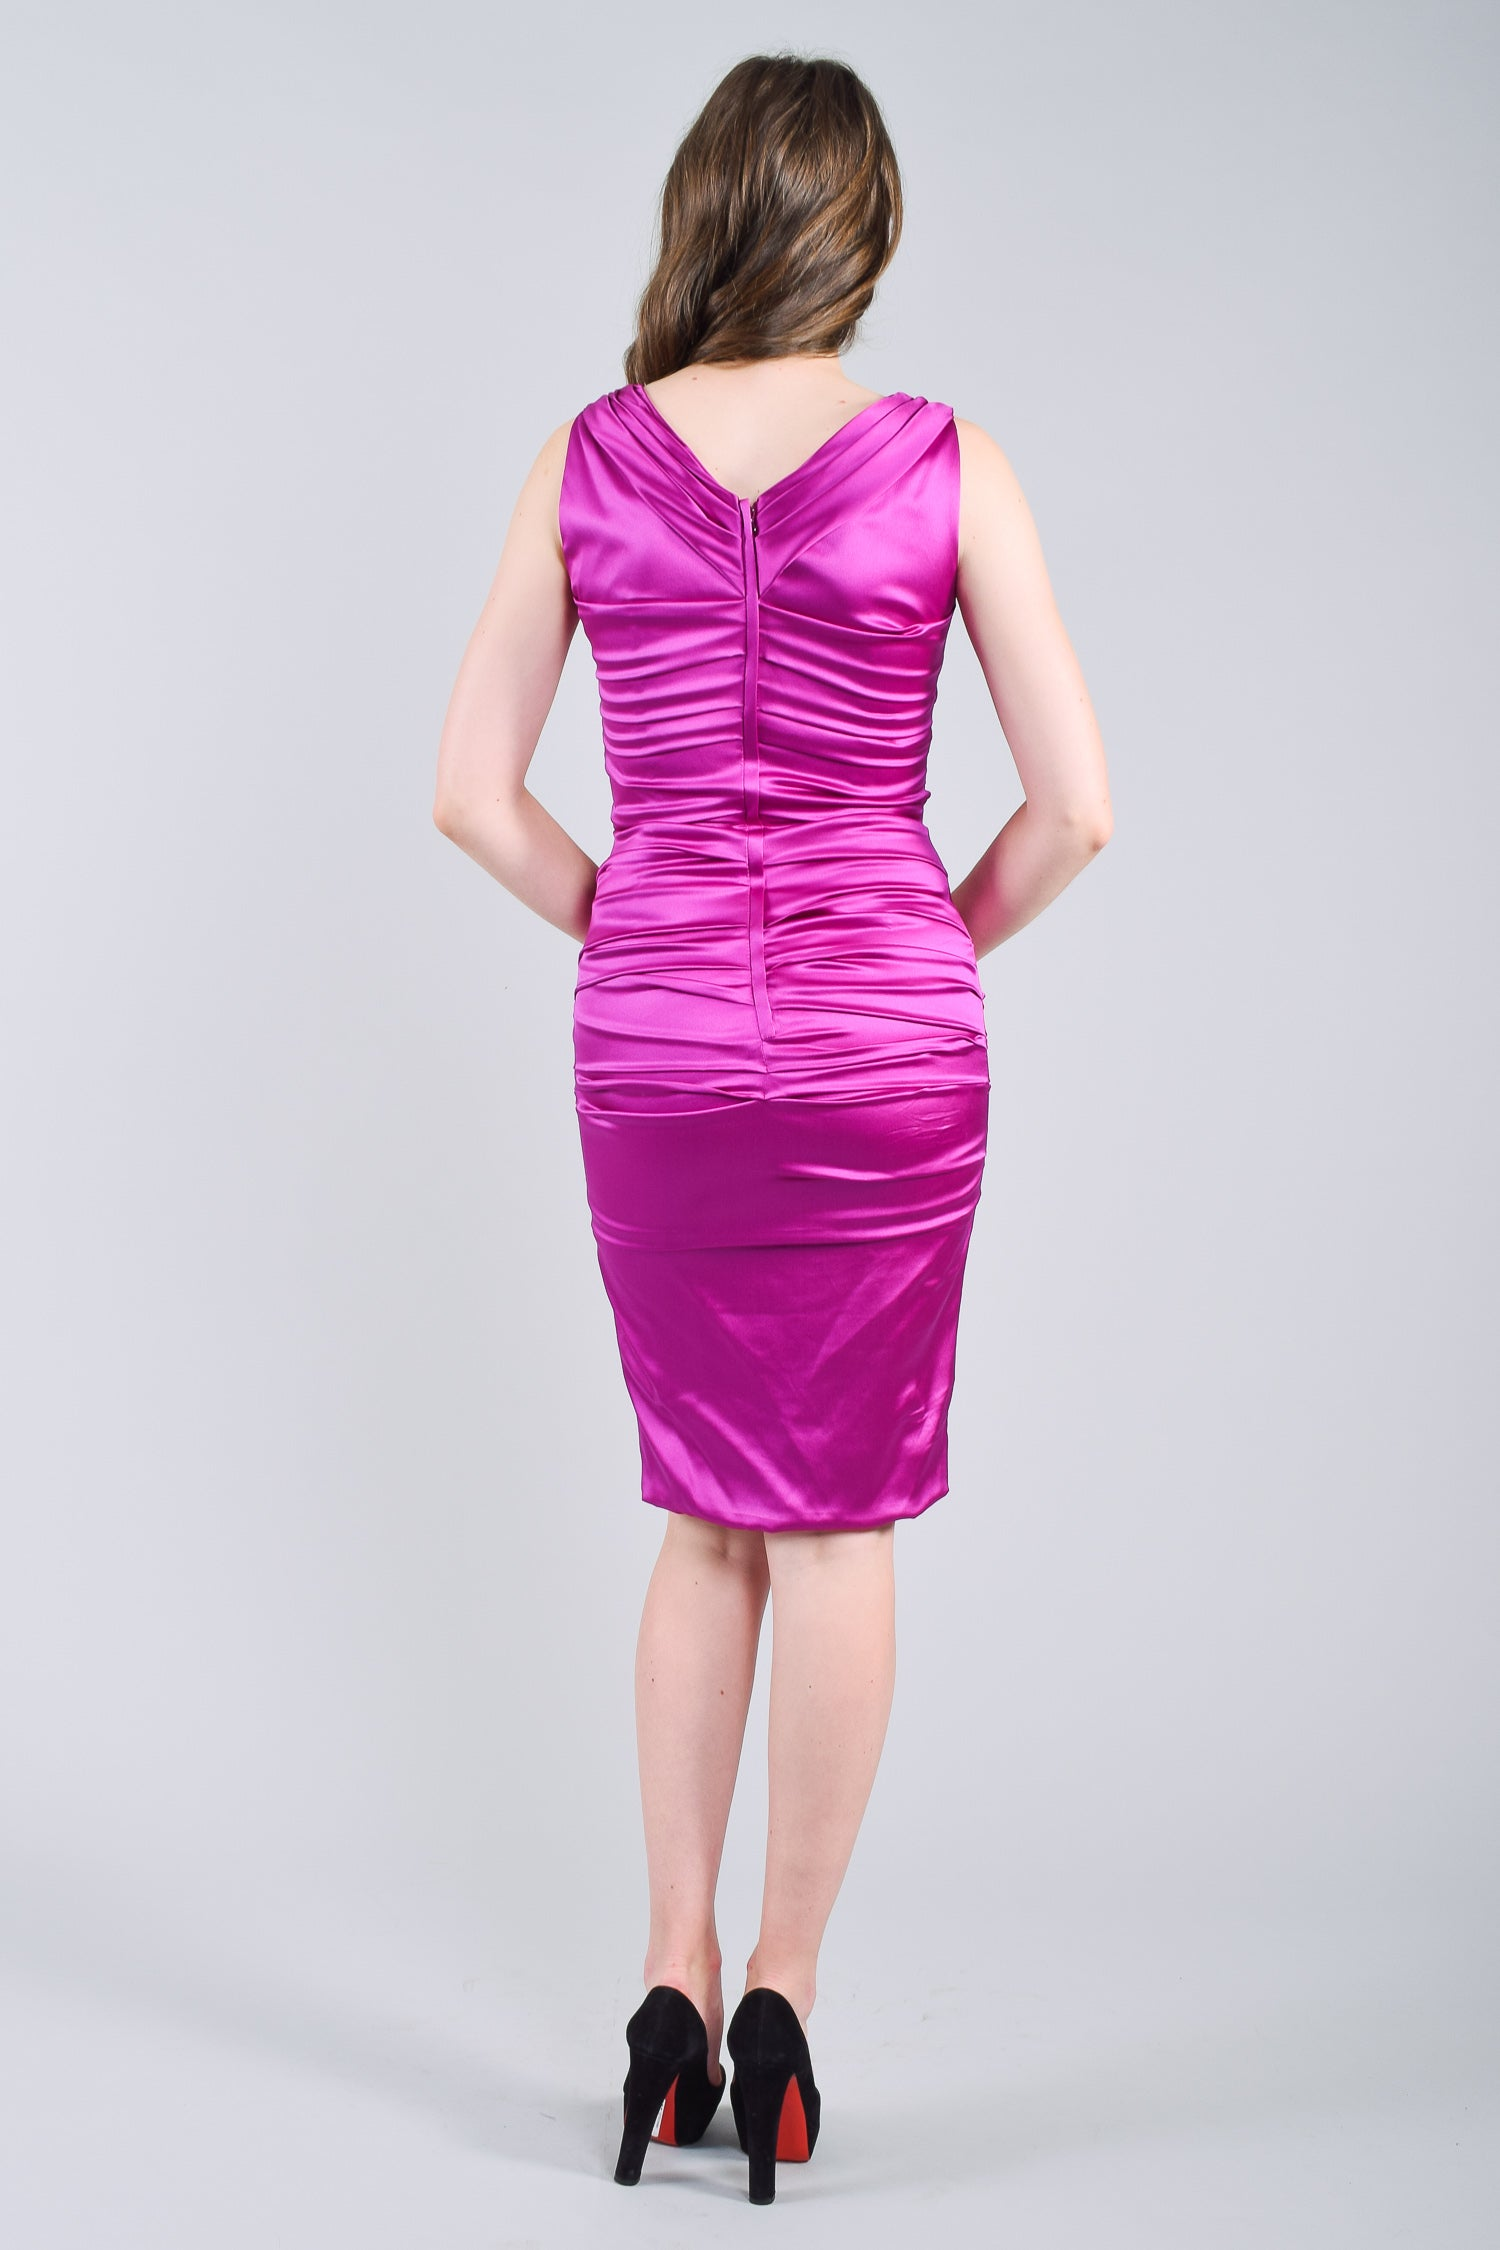 Dolce & Gabbana Purple Sleeveless Silk Dress